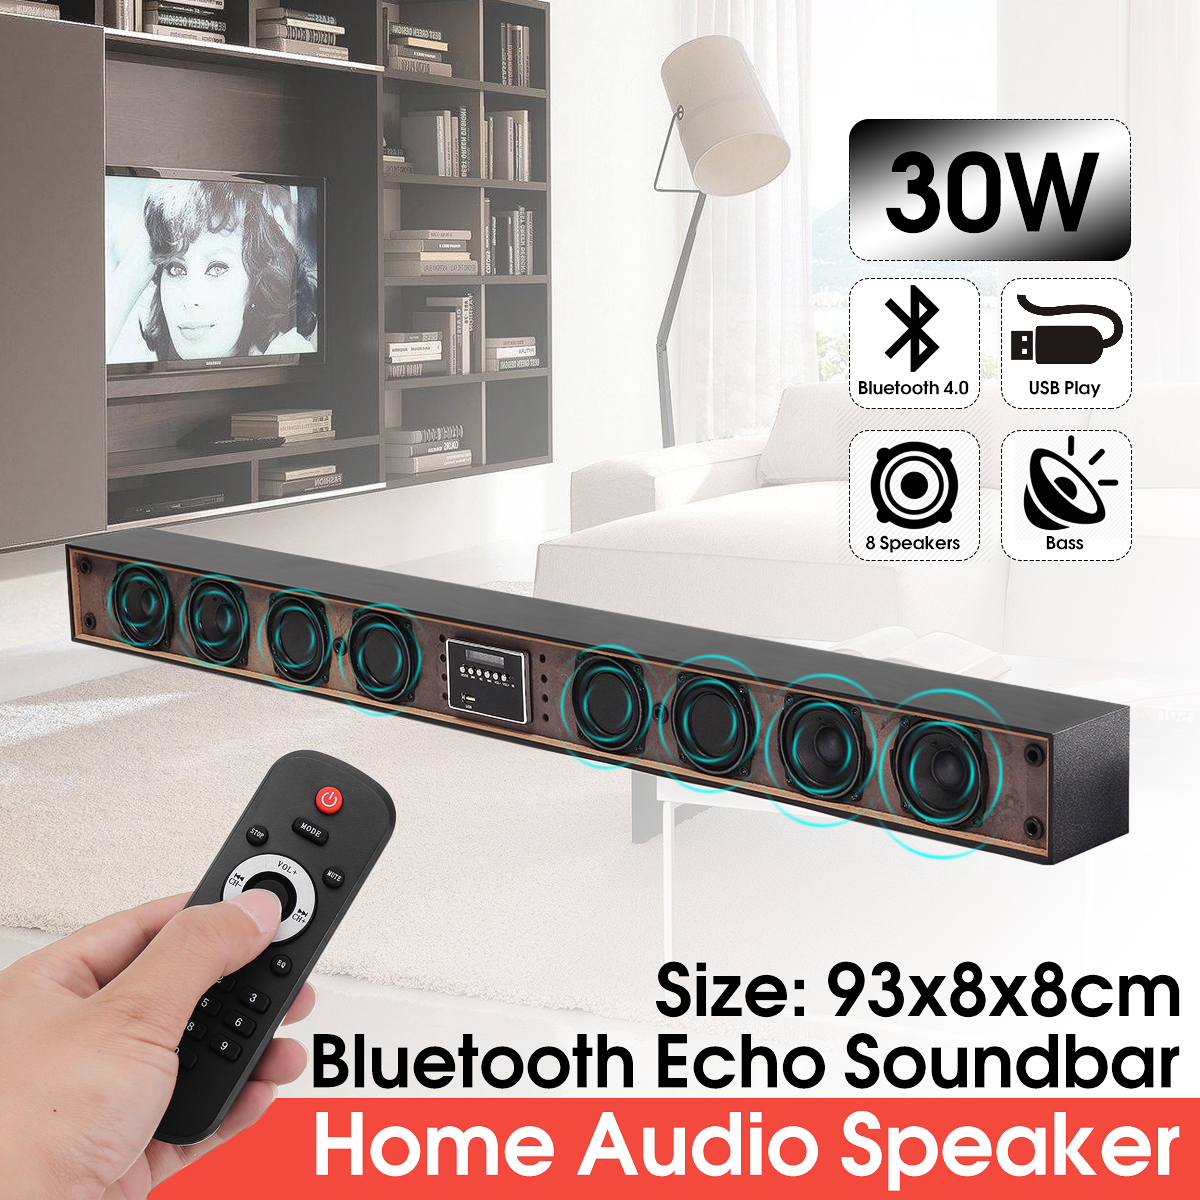 8 Drivers Wireless bluetooth Soundbar 3D Stereo Speaker Home Theater System Surrounding Sound